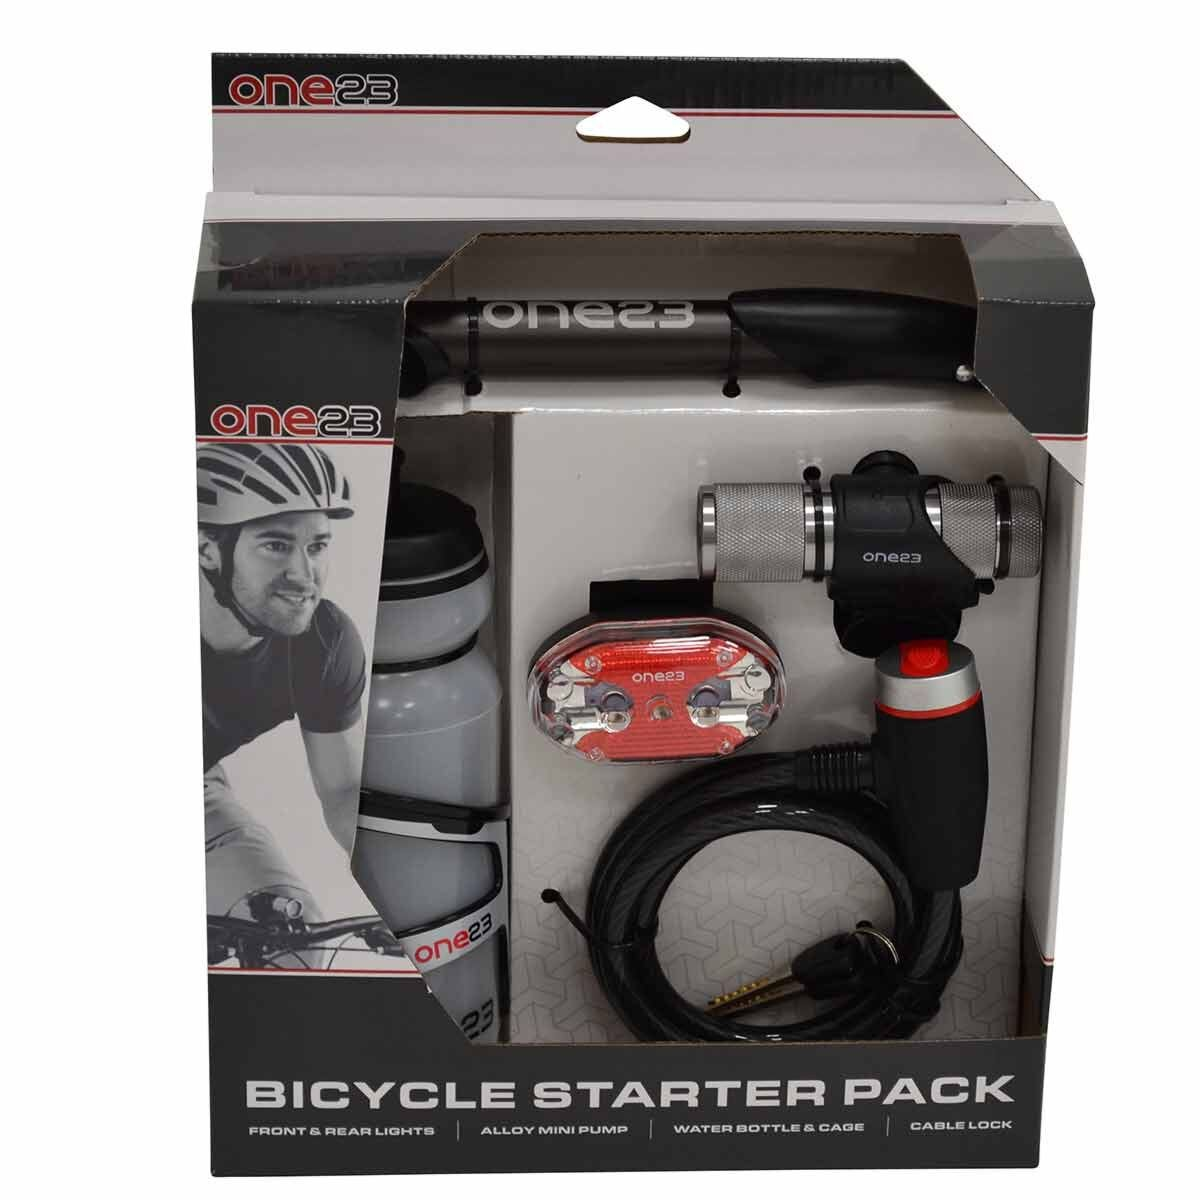 One23 Cycle Starter Pack